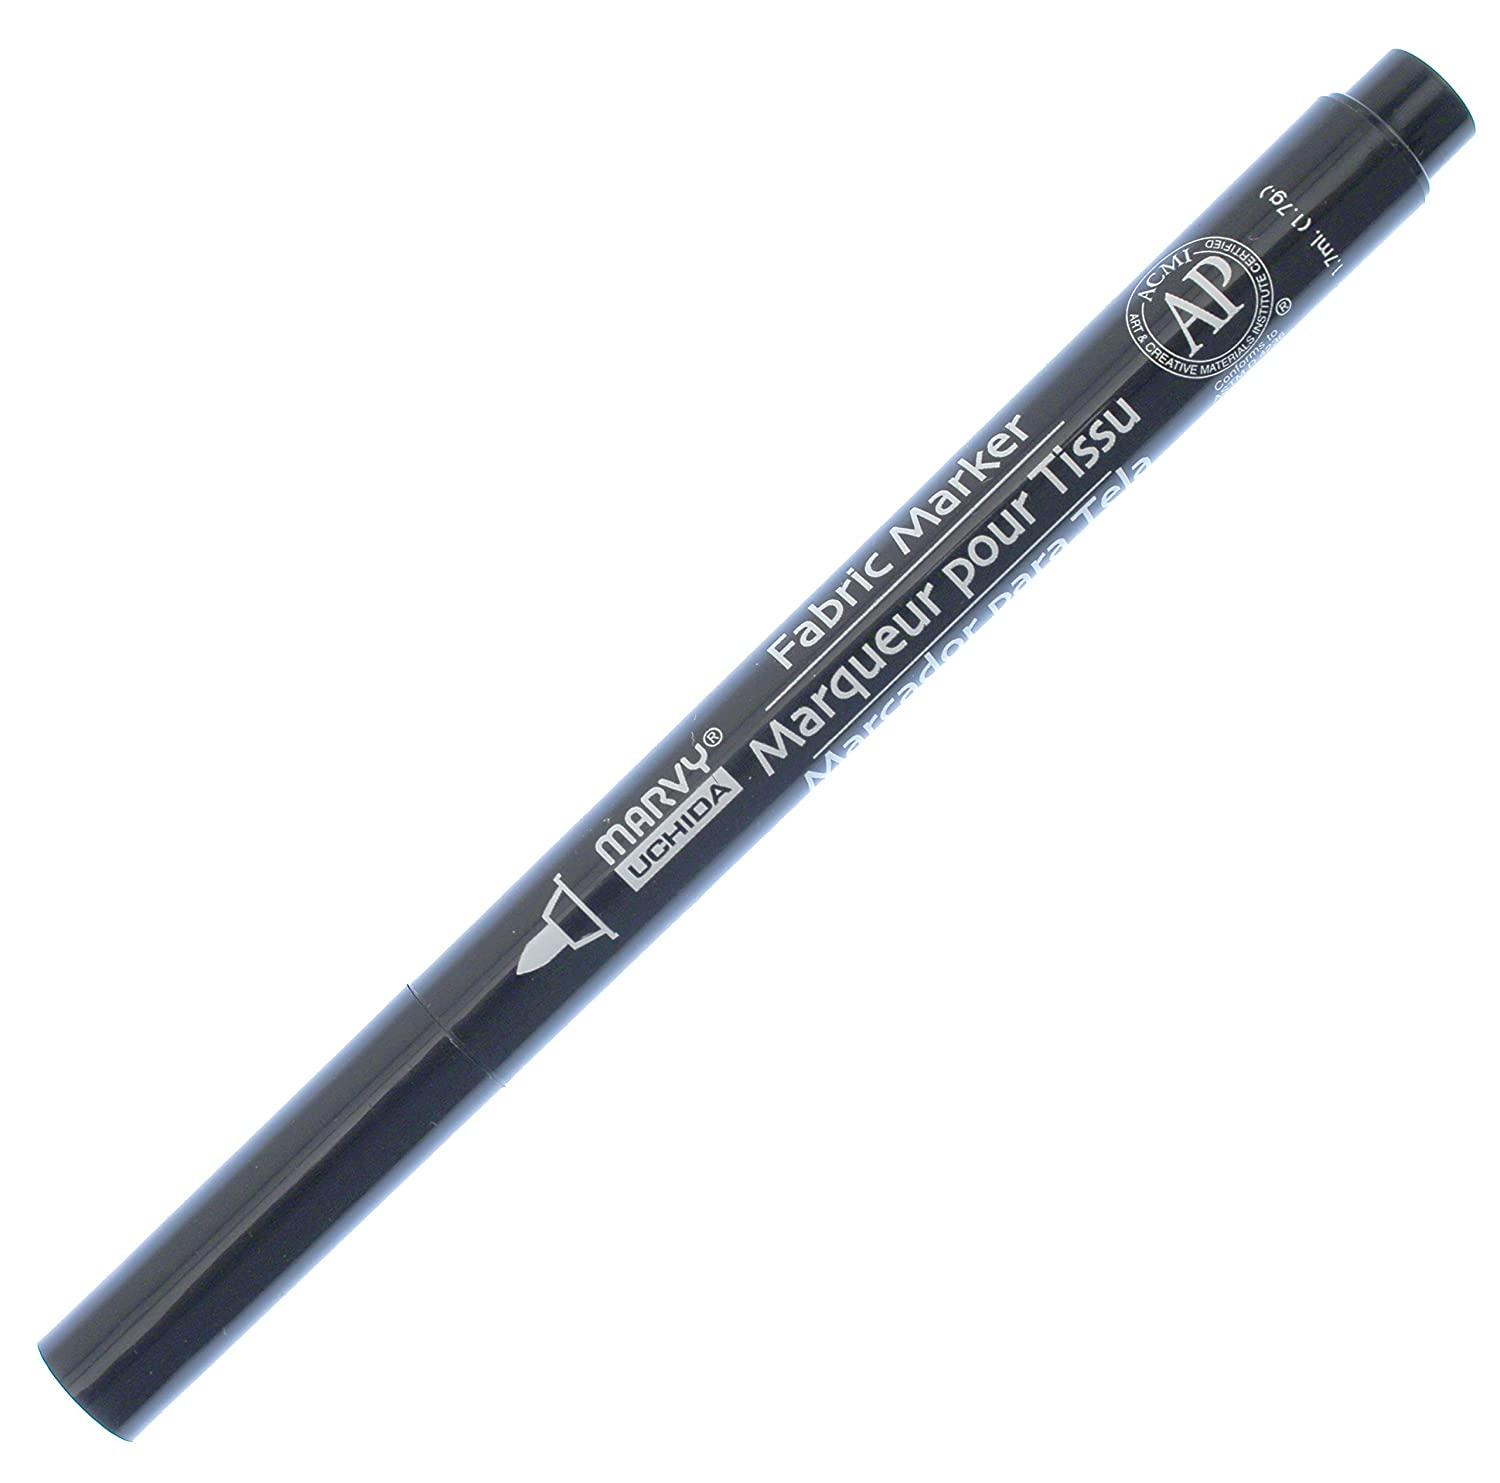 Uchida 522-C-1 Marvy Fine Point Fabric Marker, Black Uchida of America Corp